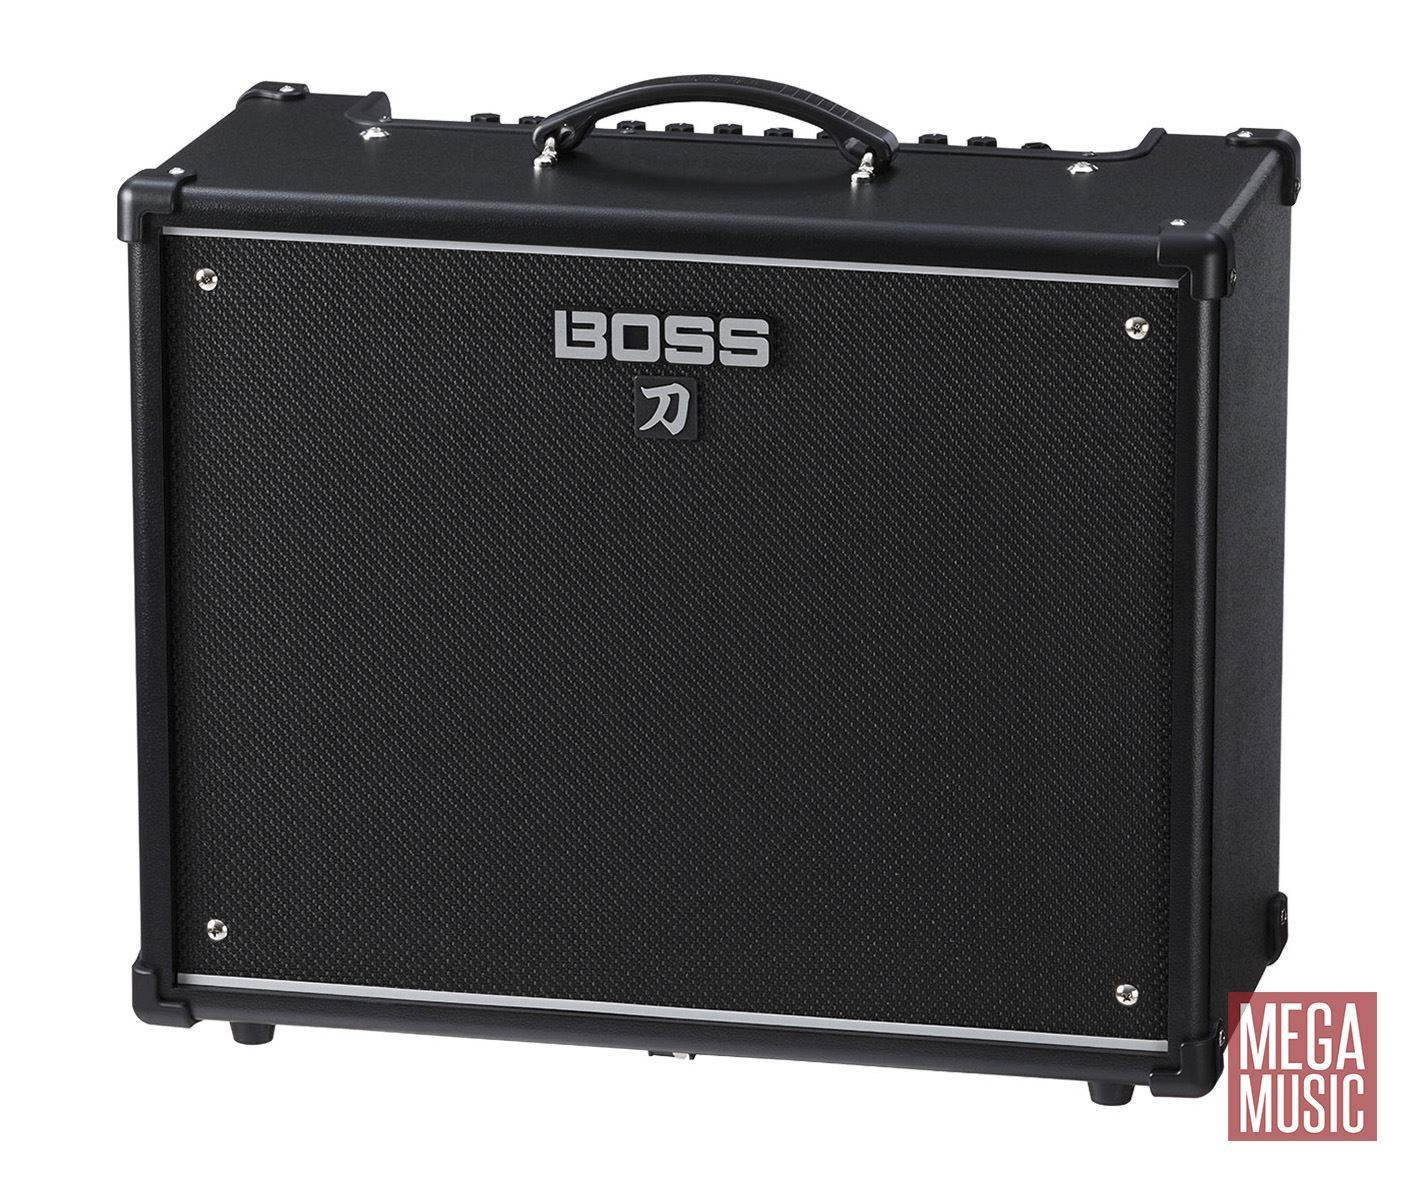 boss katana 100 guitar amplifier combo perth mega music online. Black Bedroom Furniture Sets. Home Design Ideas